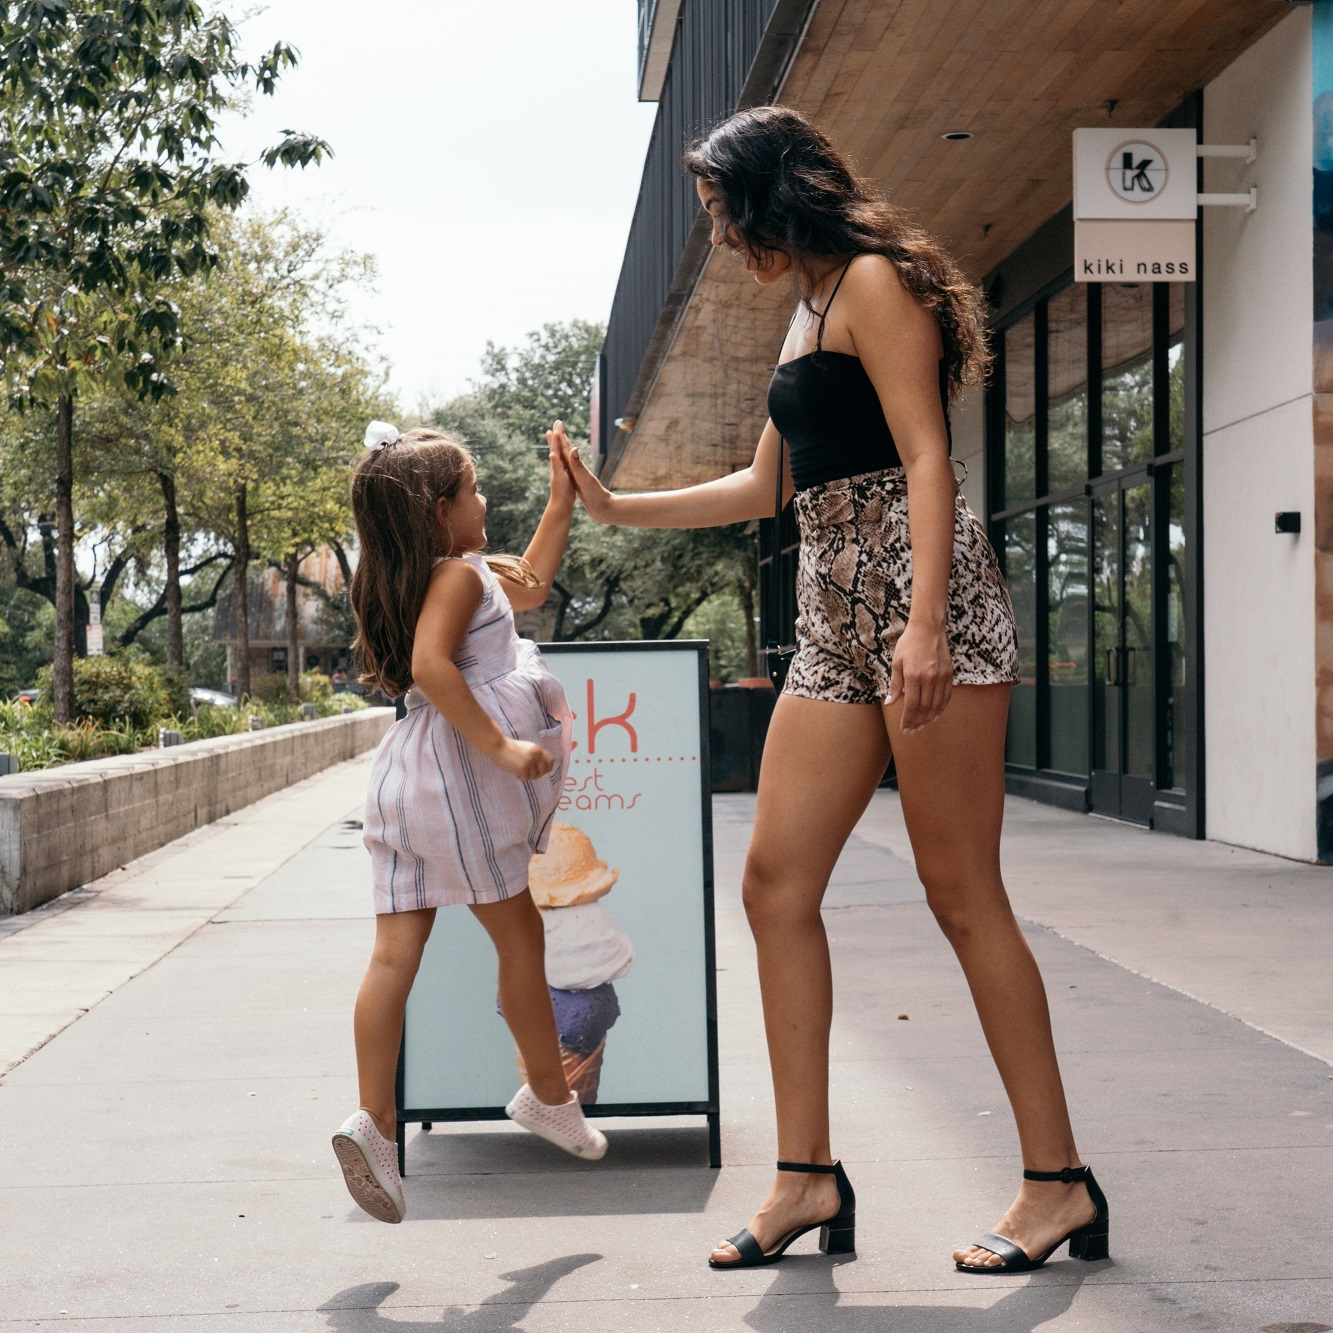 Mom and daughter giving high five outside at plaza